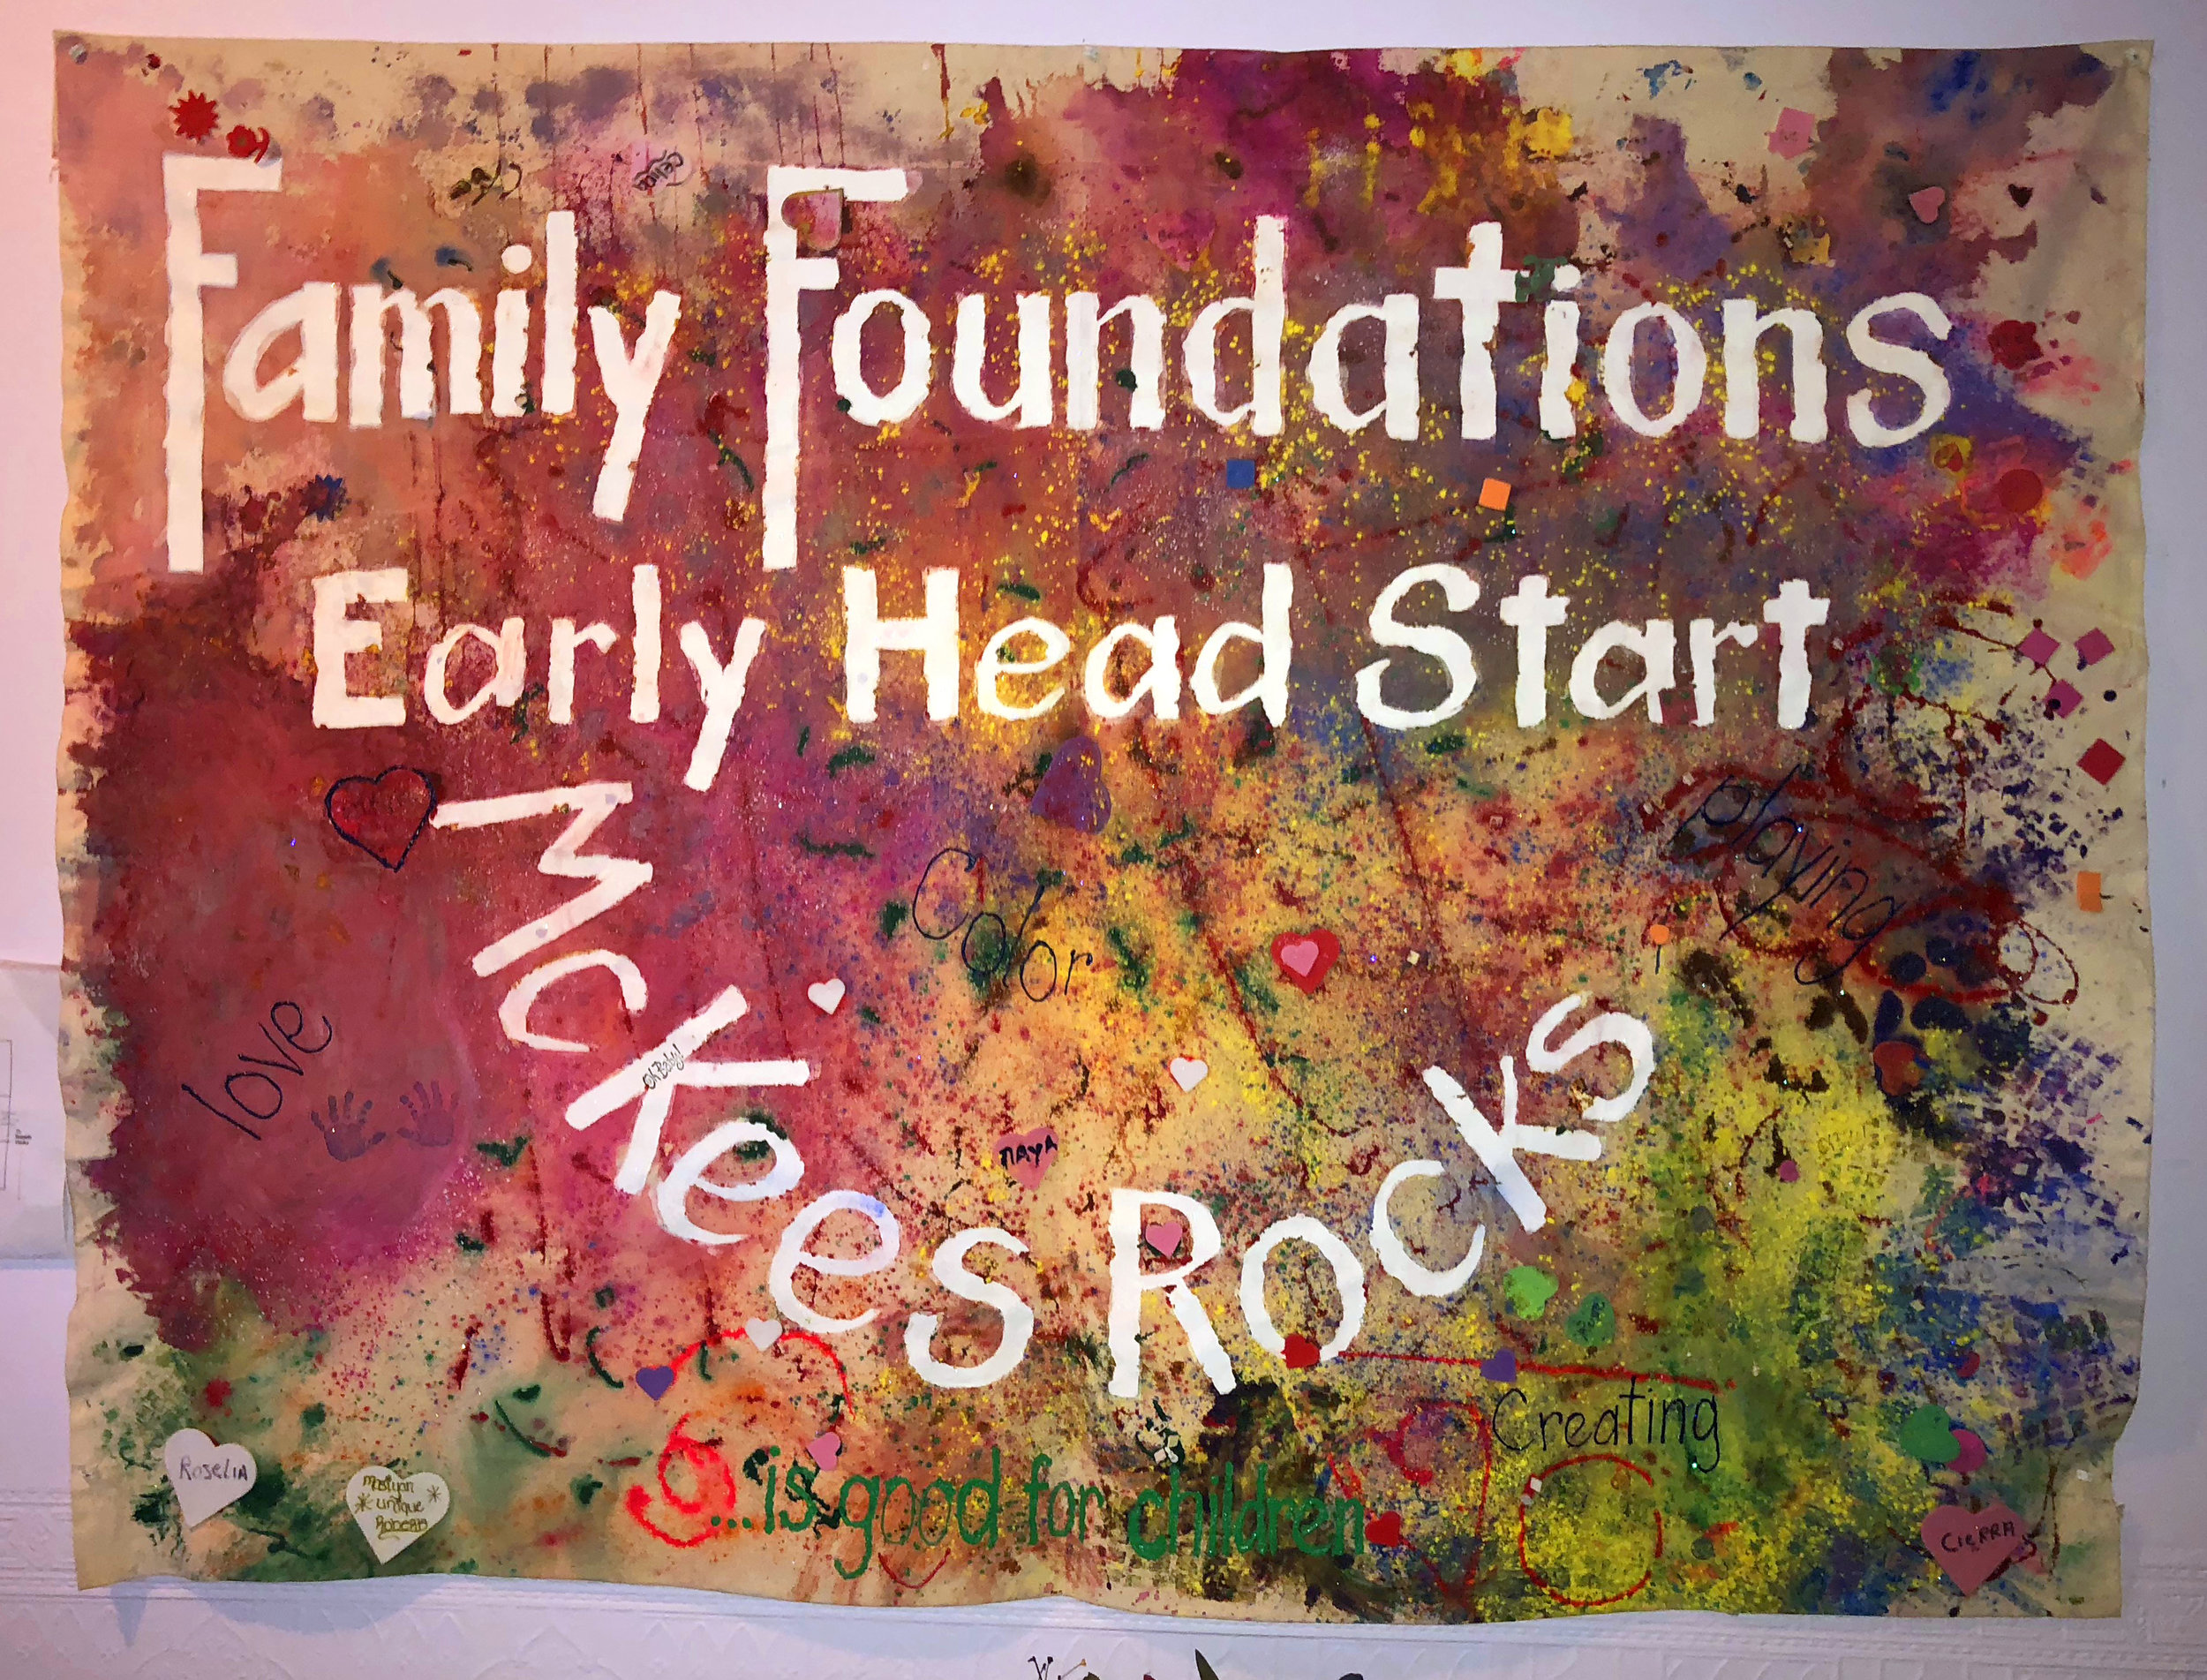 Family FoundationsFOR.jpg